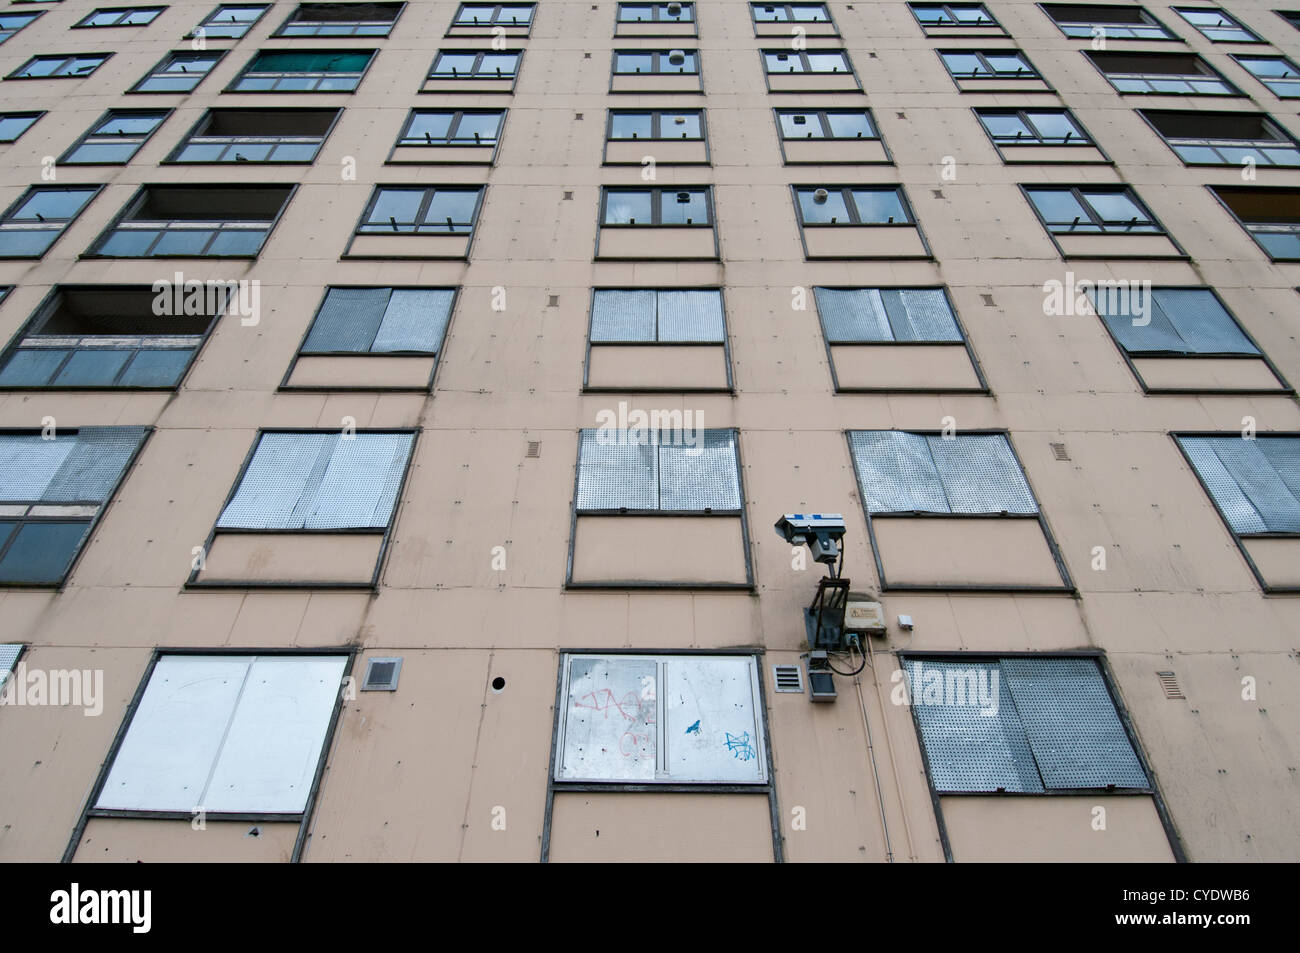 Surveillance, CCTV or closed circuit video camera mounted on the wall of Glasgow's notorious Red Road Flats, - Stock Image